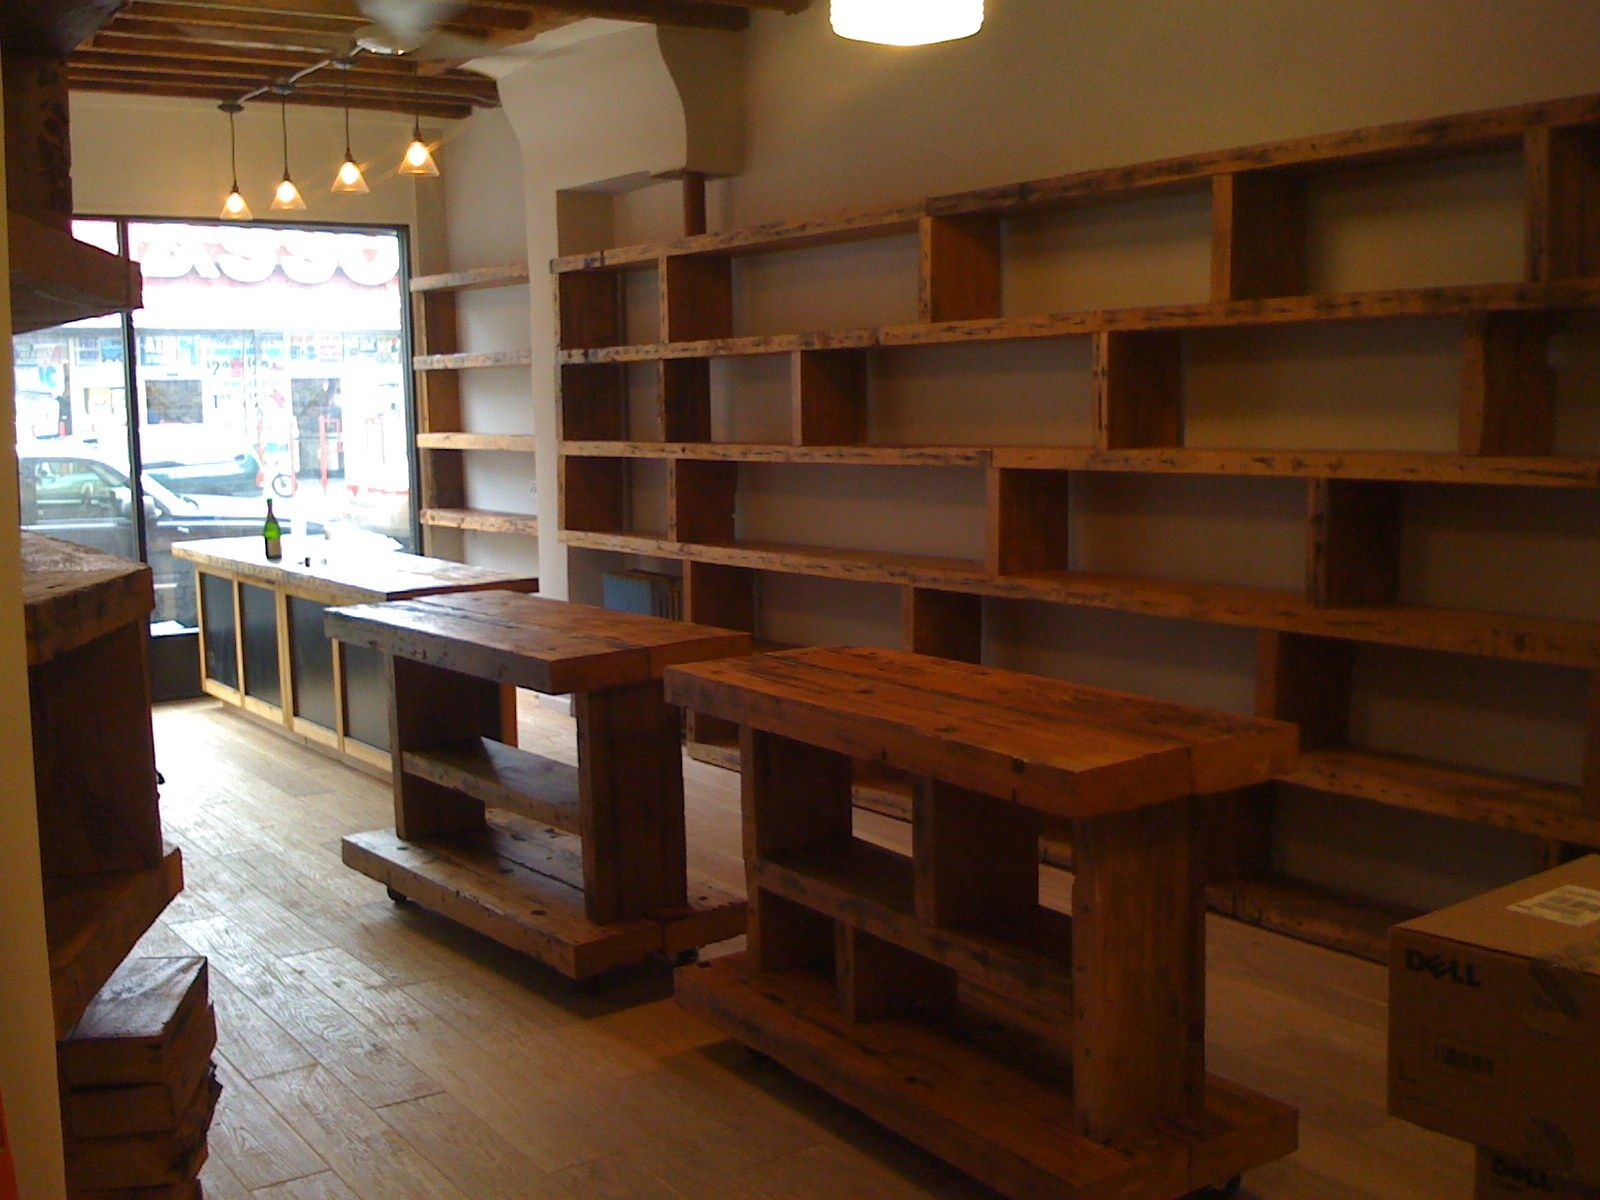 wood shelving up the wall pos counter reclaimed wood top